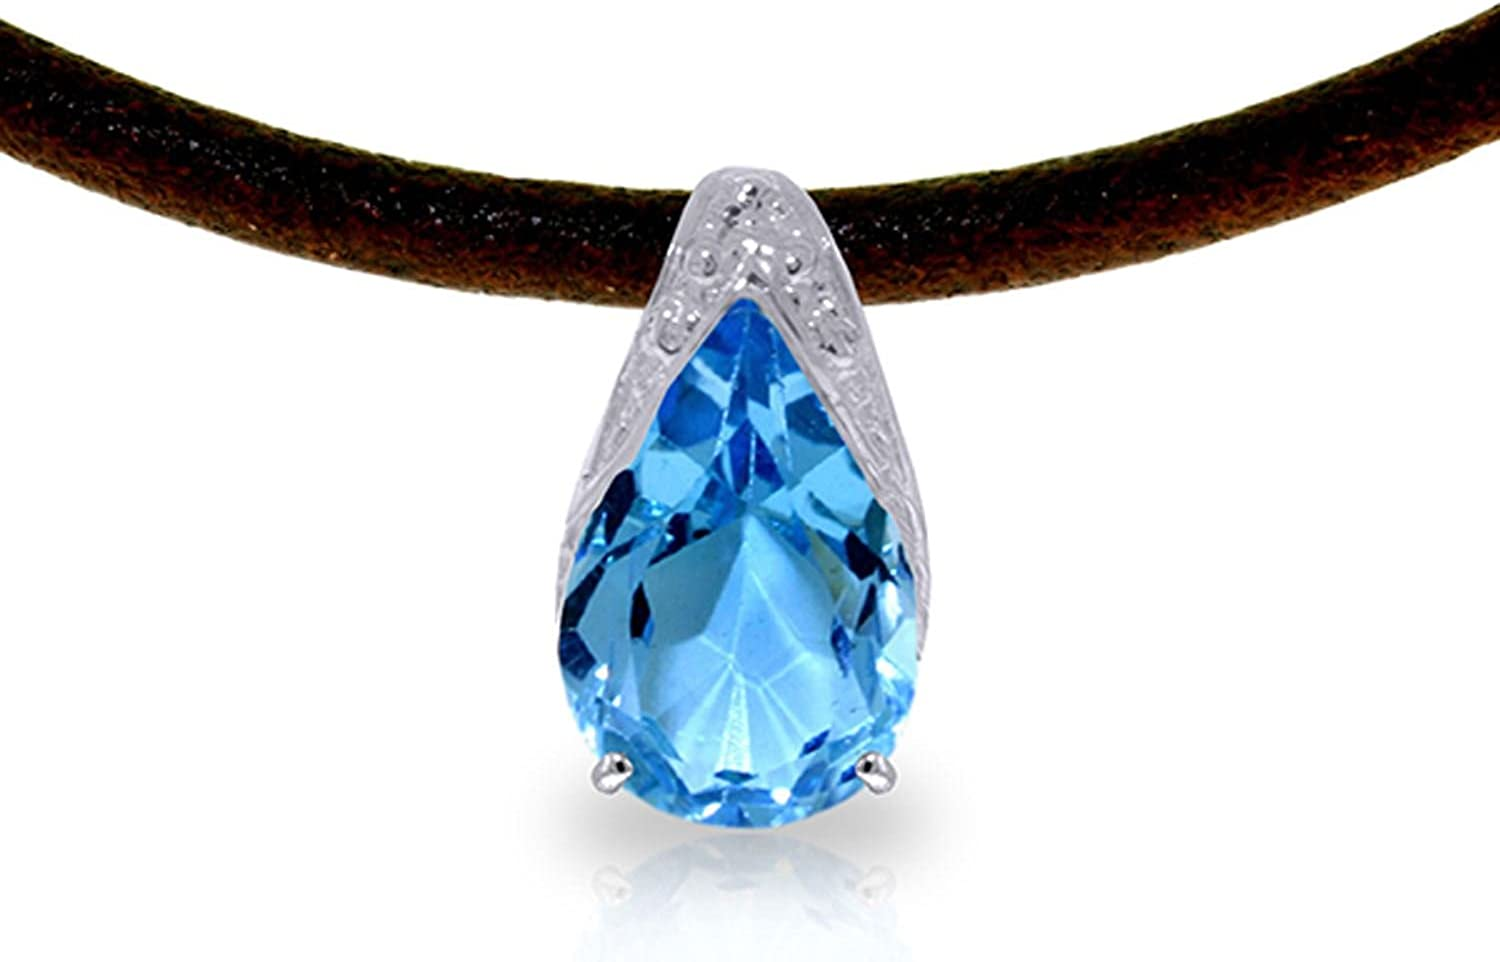 ALARRI 6 CTW 14K Solid White Gold Leather Necklace Blue Topaz with 20 Inch Chain Length